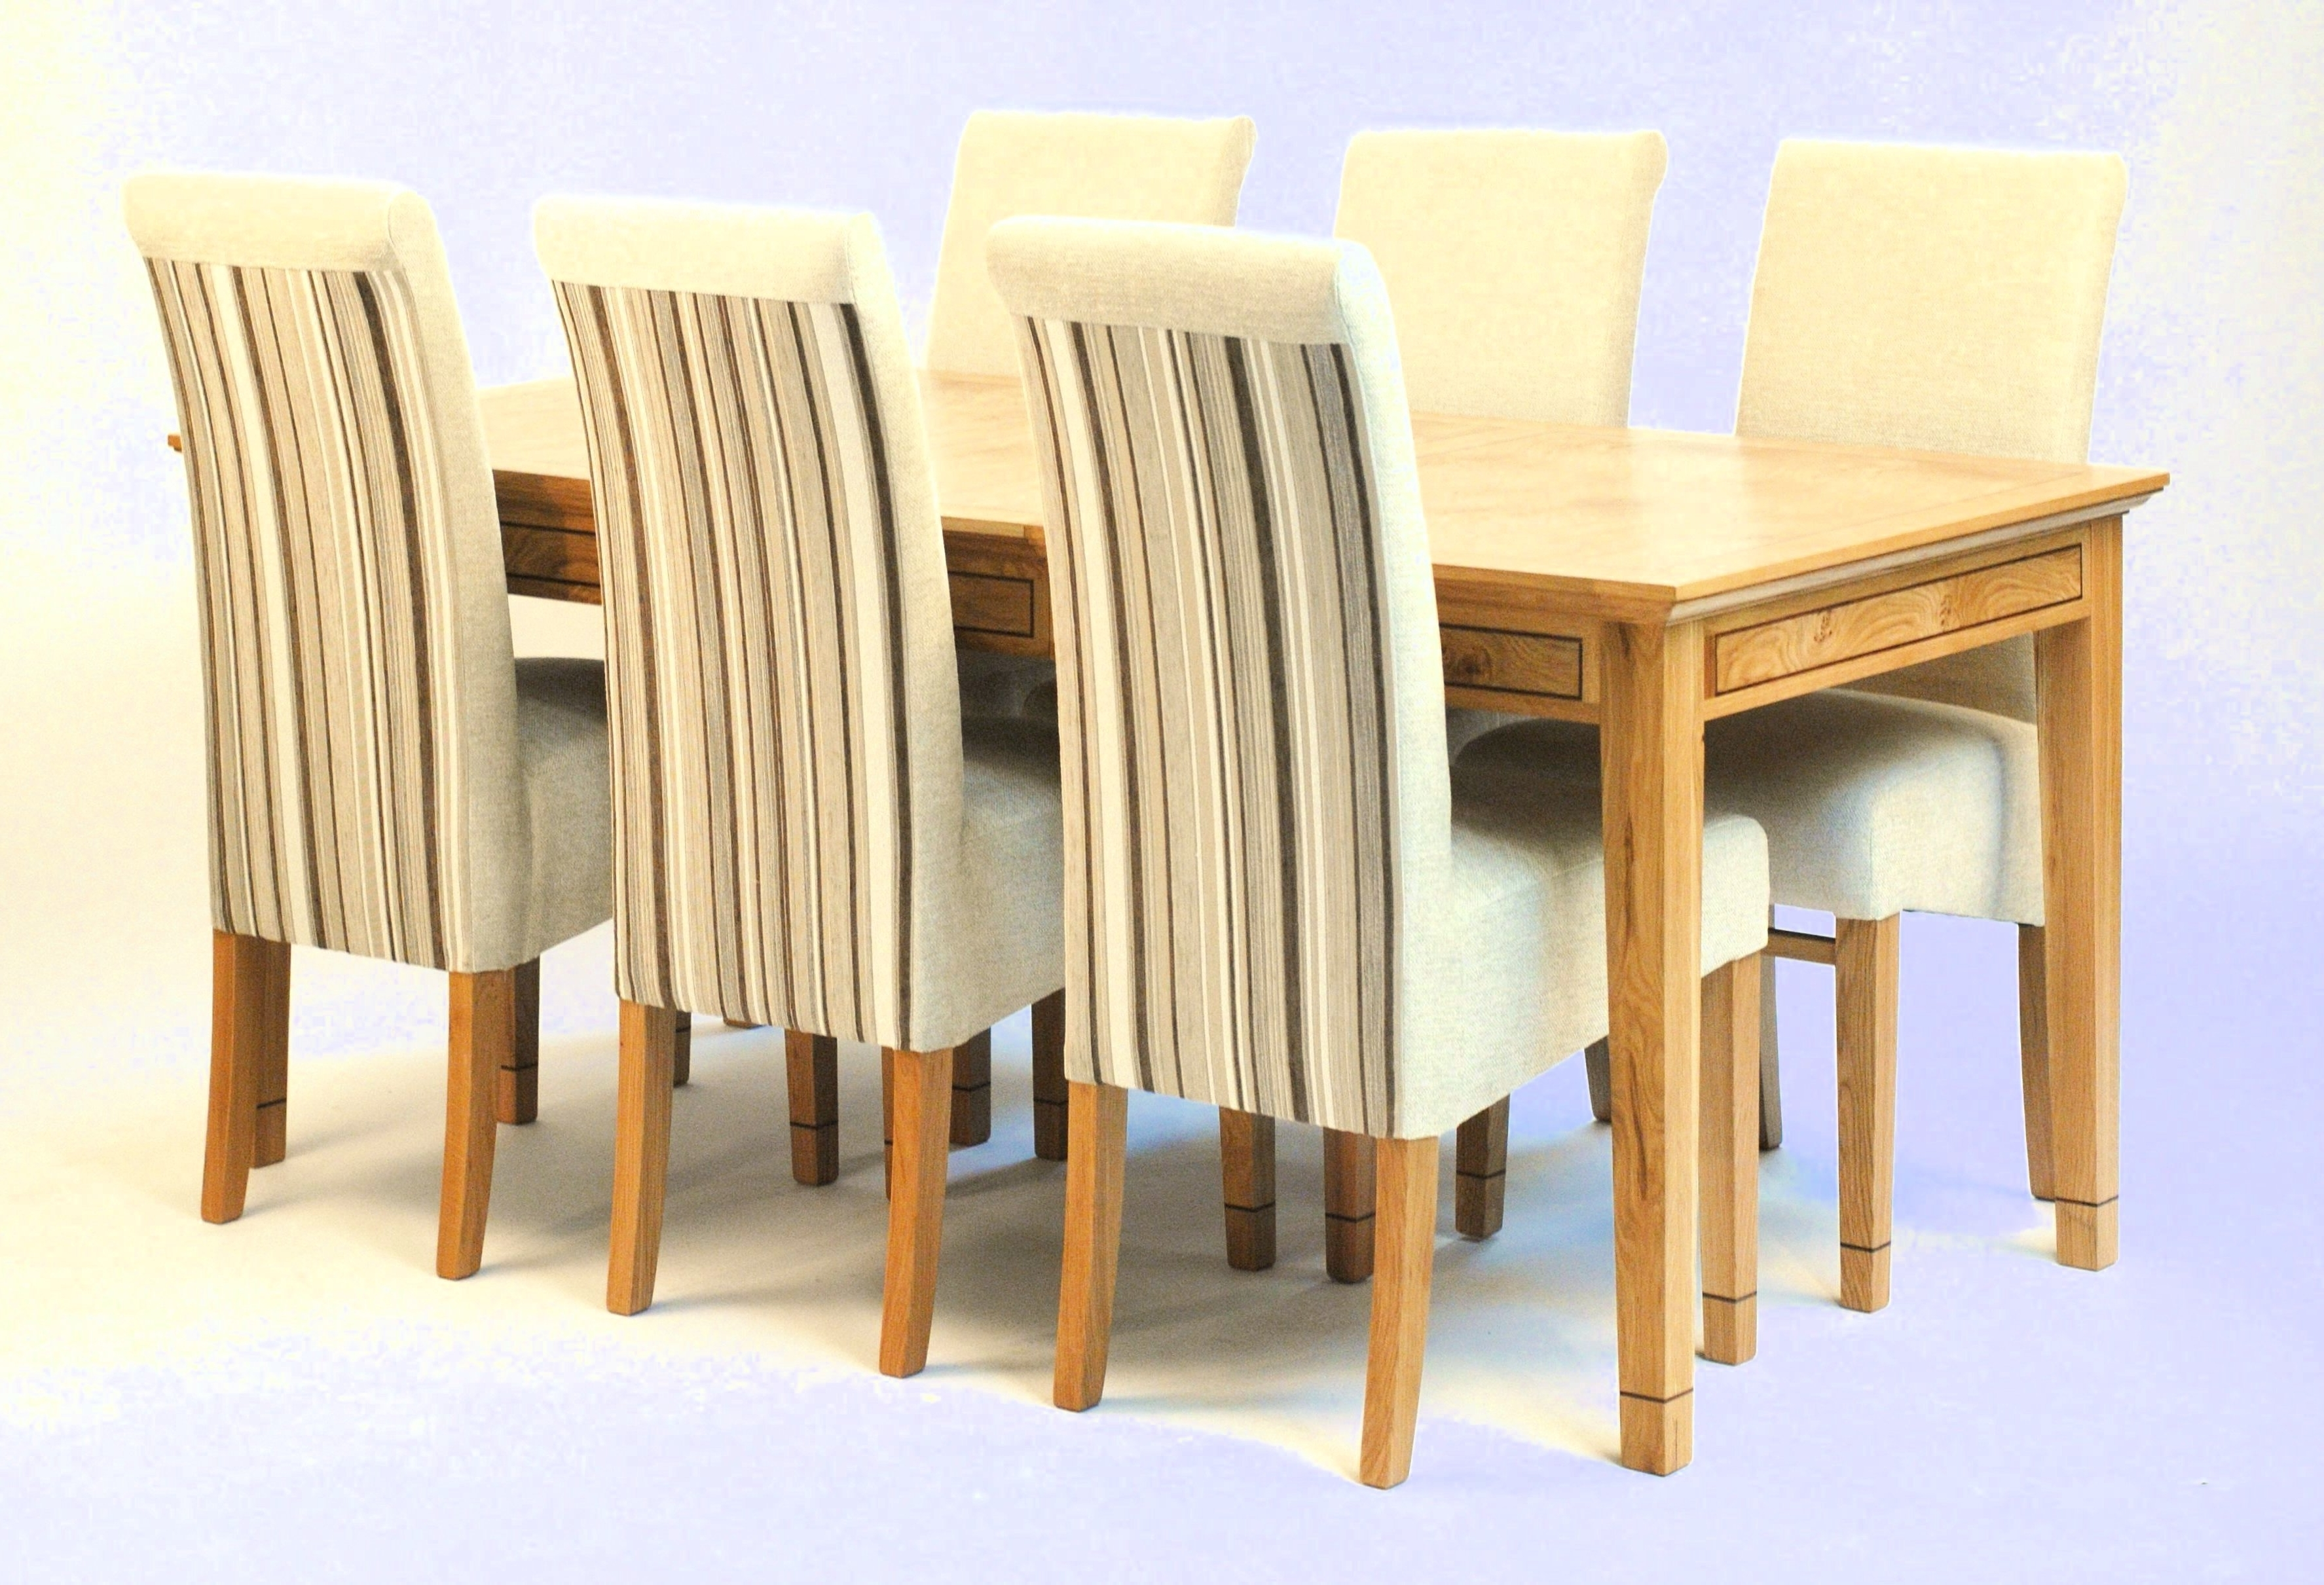 2018 Extending Dining Tables With 6 Chairs With Regard To Oak Extending Dining Table & 6 Chairs (View 1 of 25)